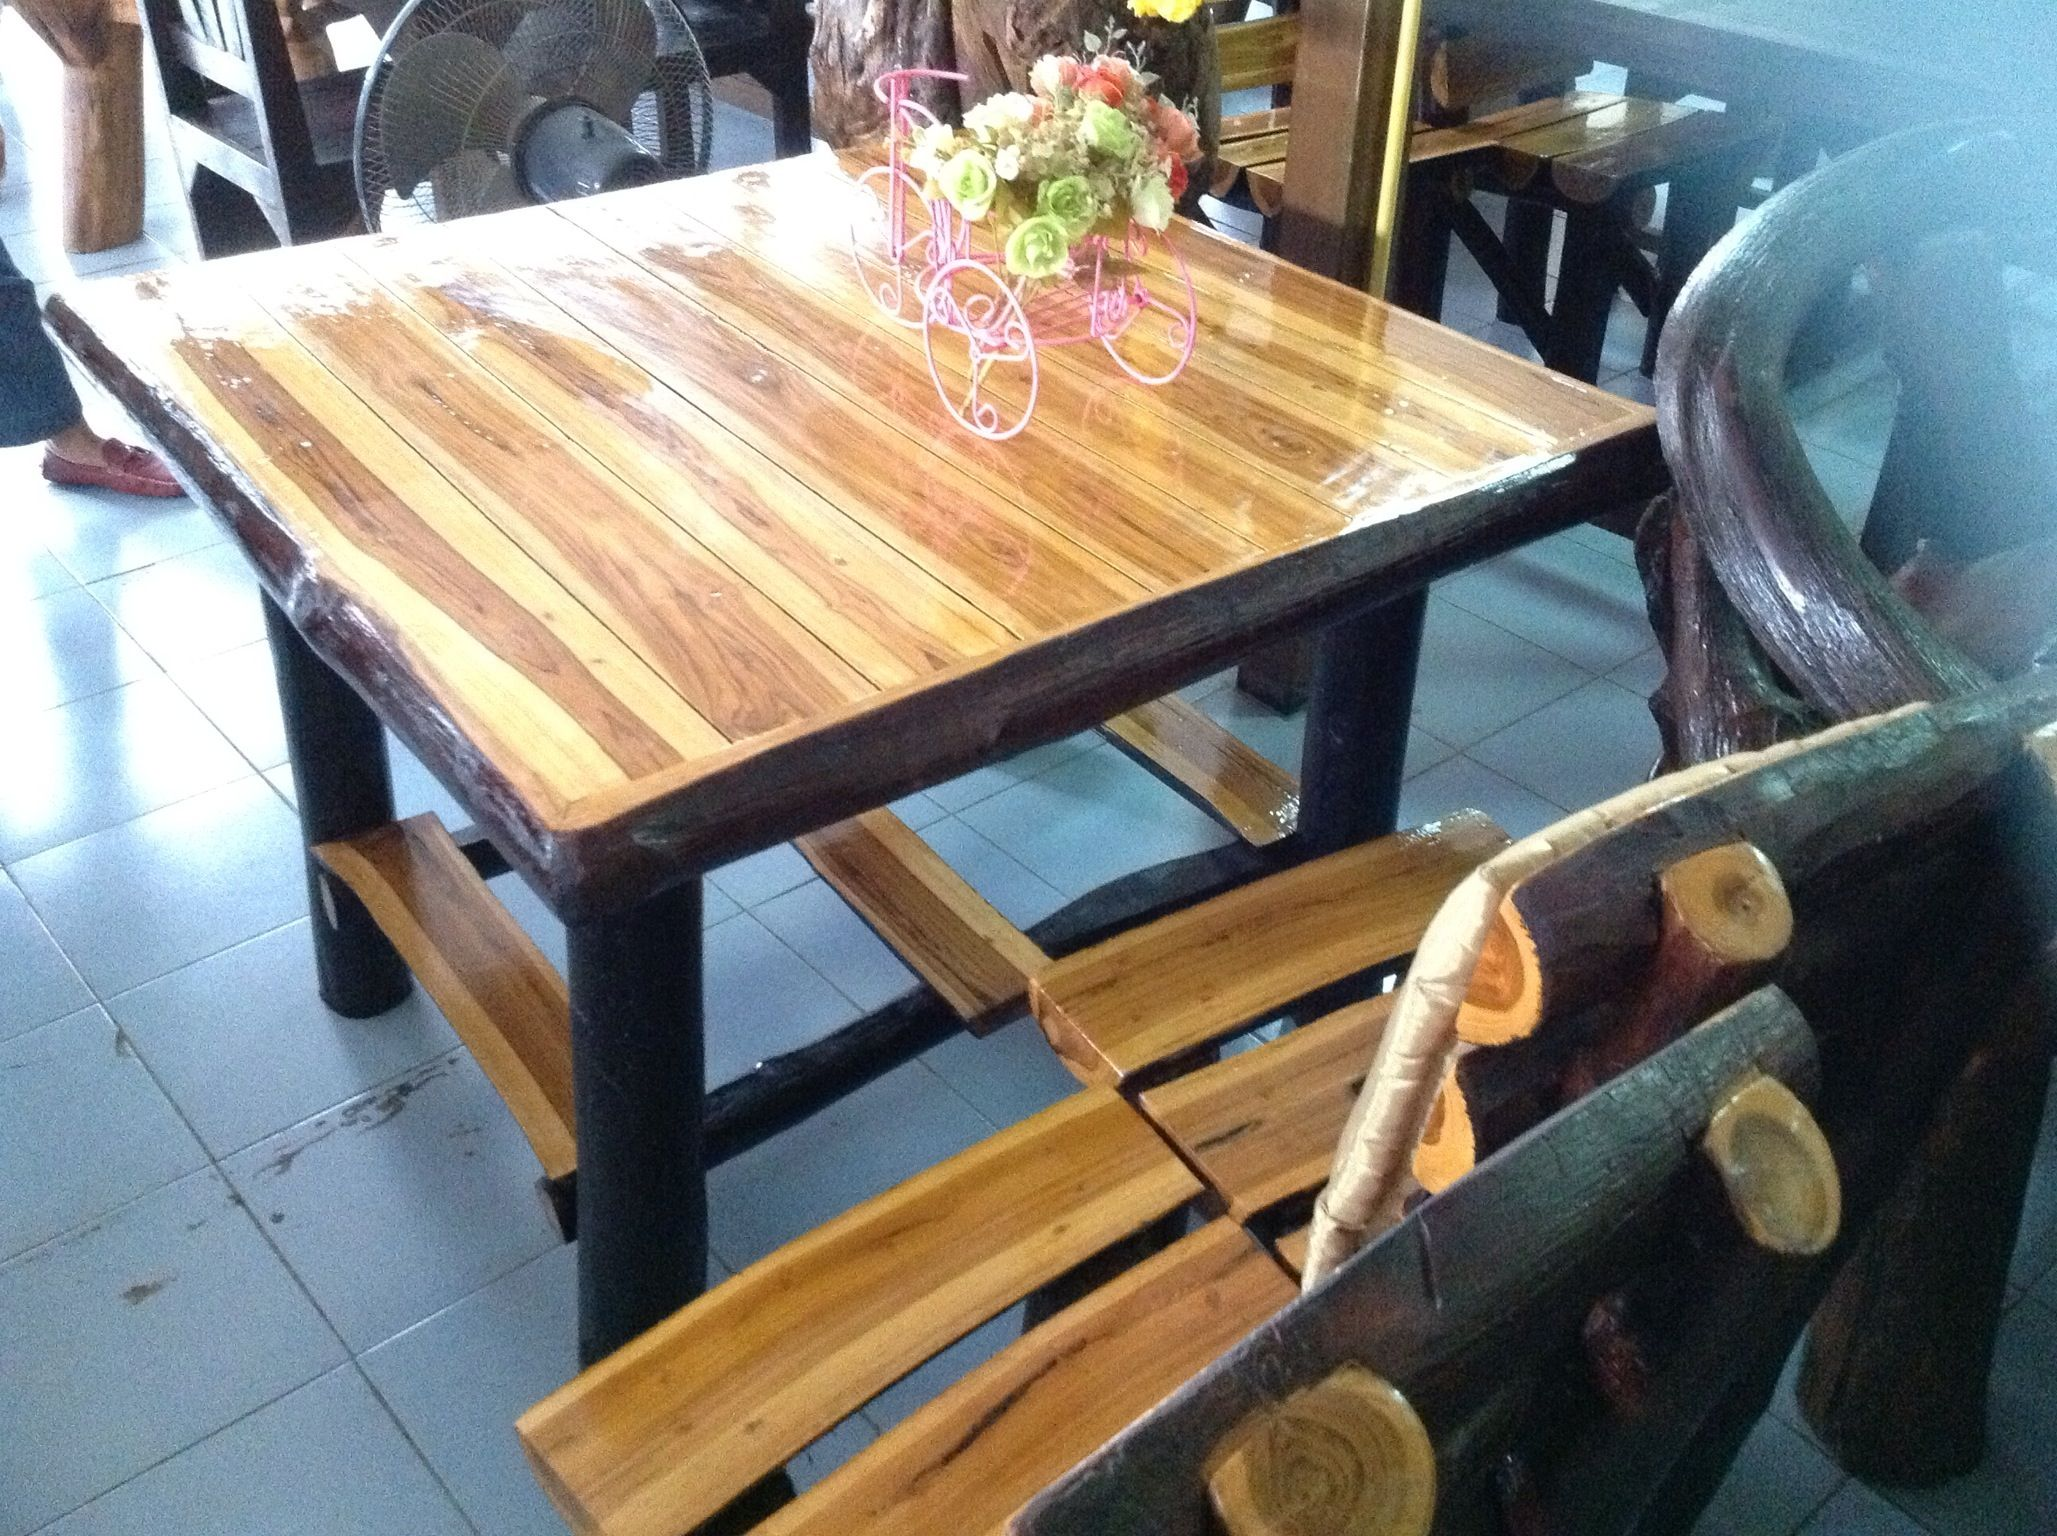 Handcrafted teak wood dining table from Chiang Mai Thailand